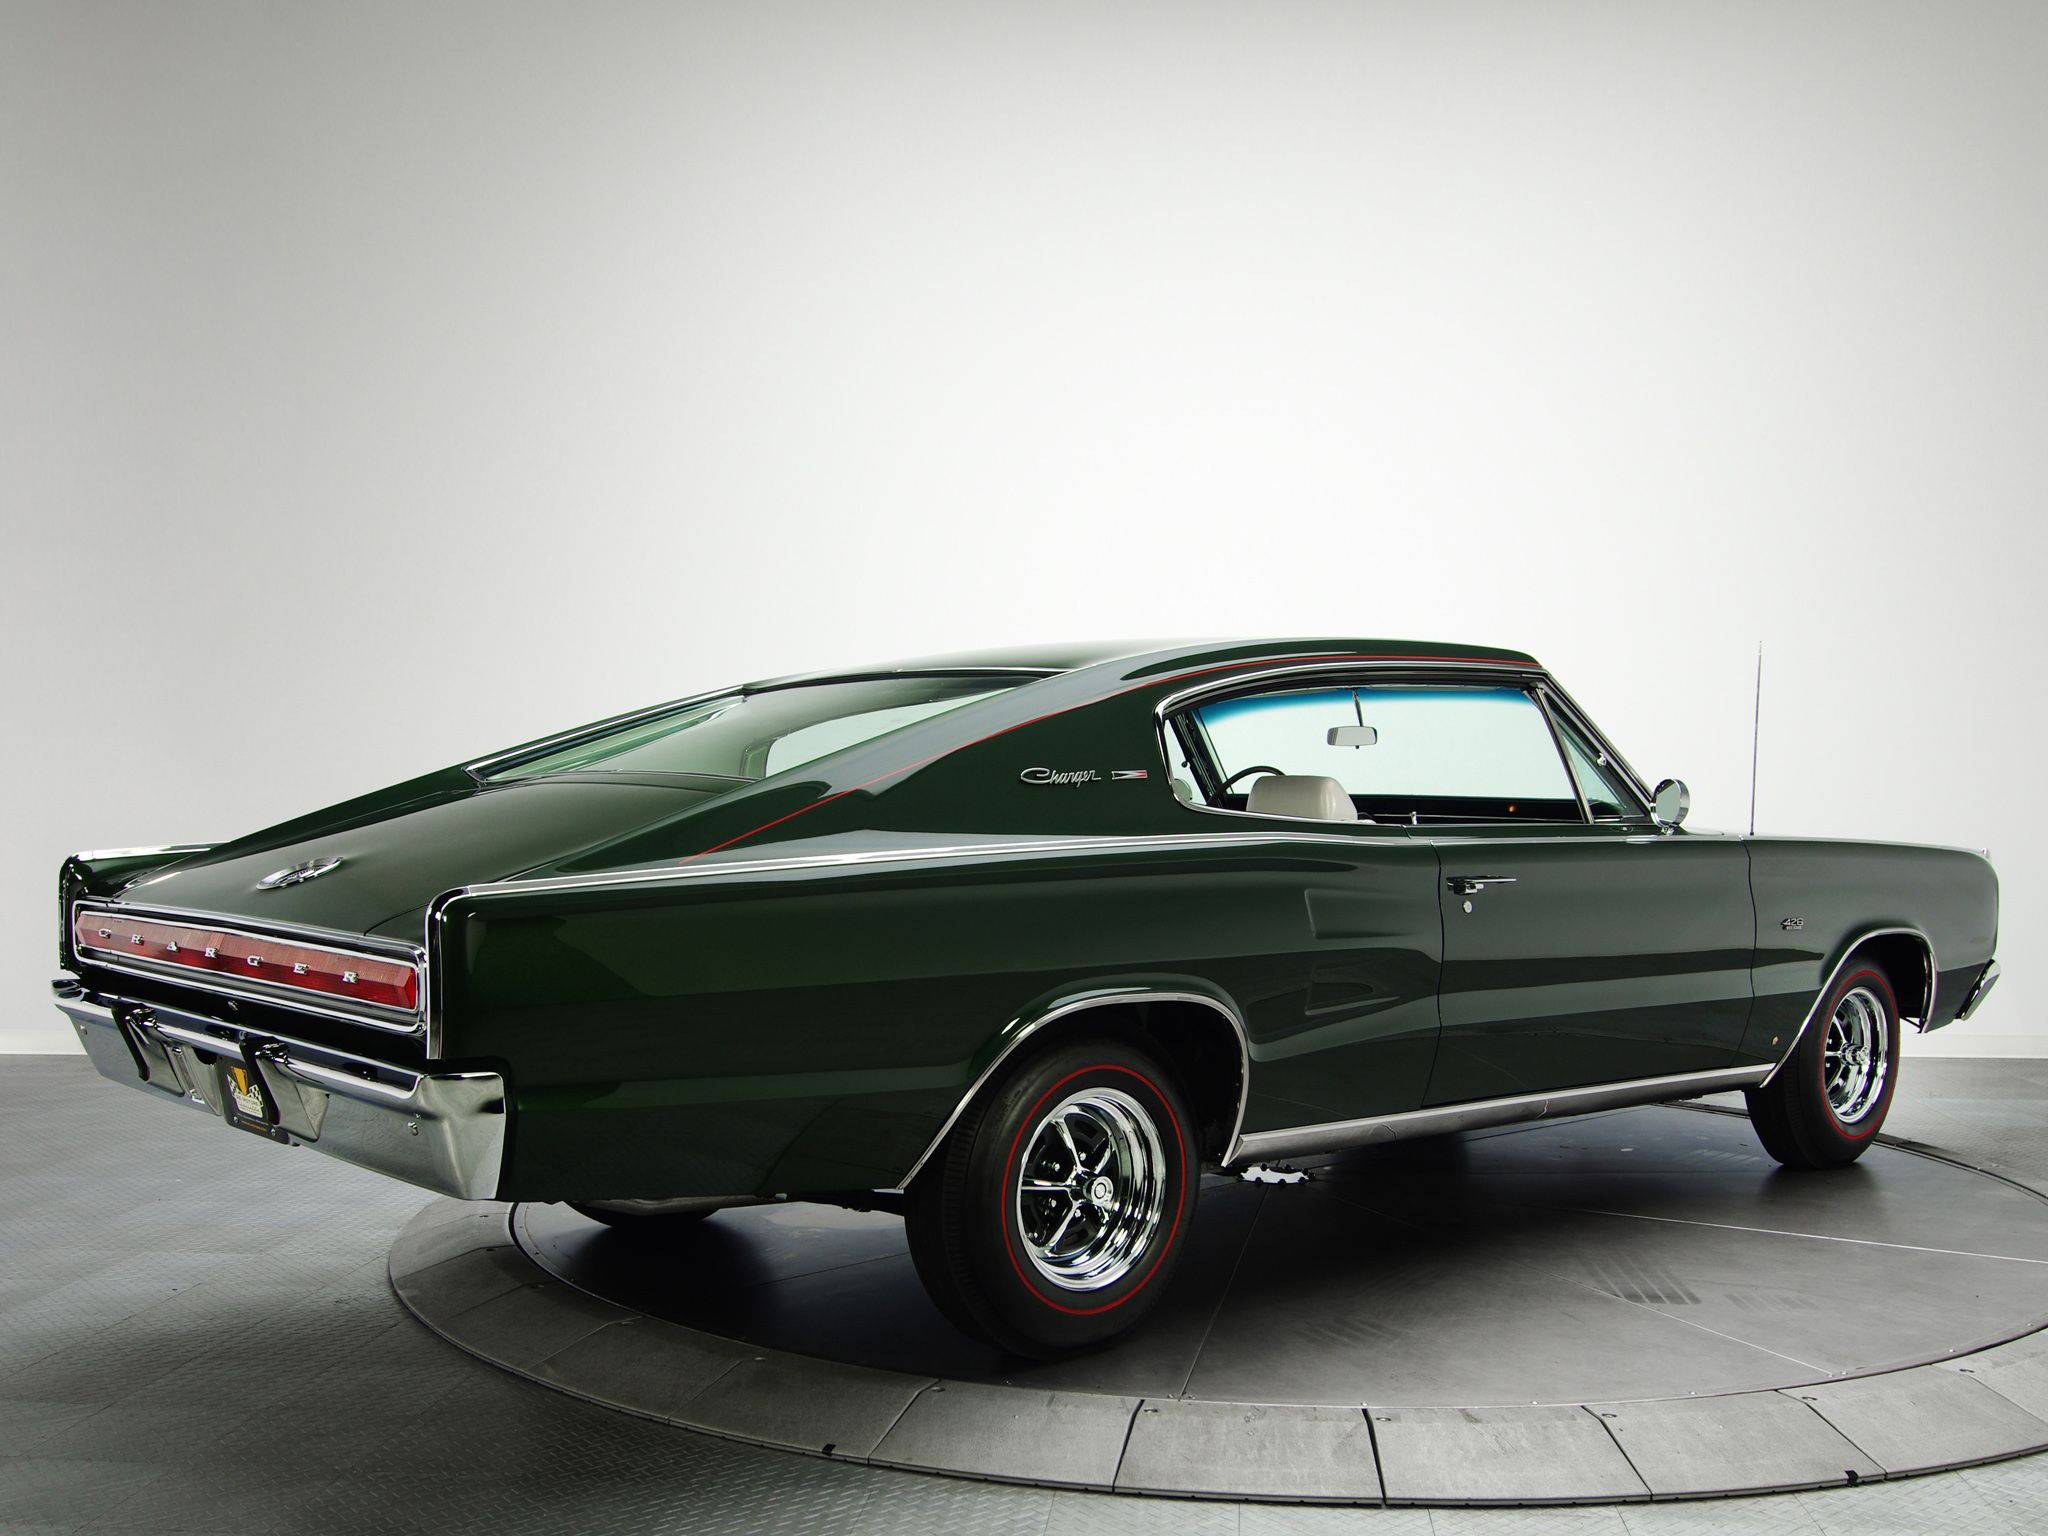 charger 66-67 - Google 検索 | Charger | Pinterest | Dodge charger